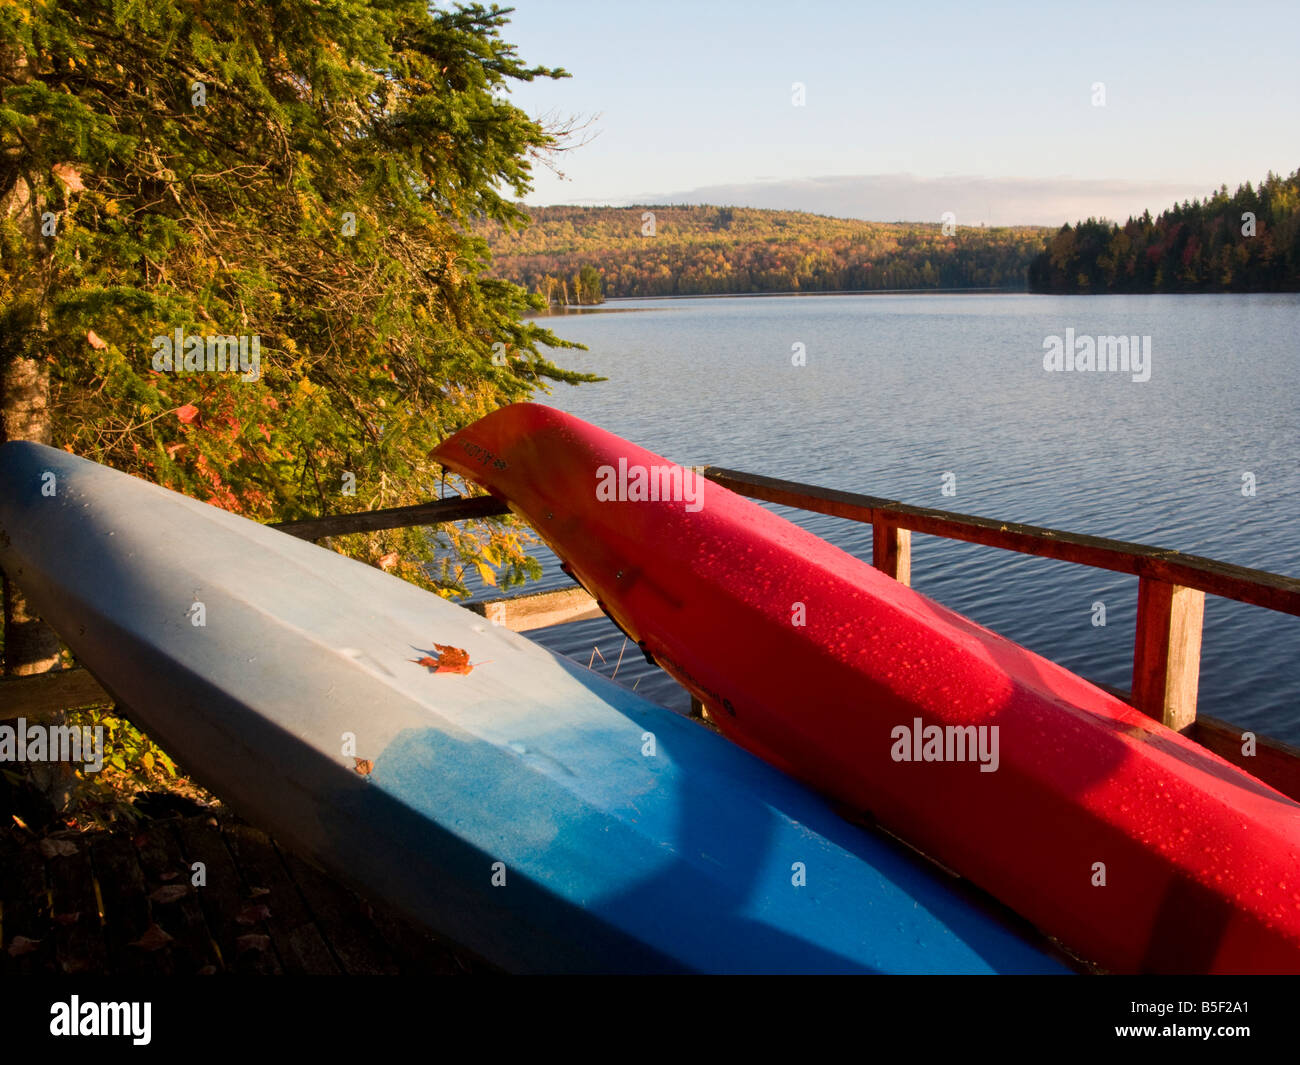 Red and Blue kayak on a dock in Canadian cottage country with fall colours - Stock Image